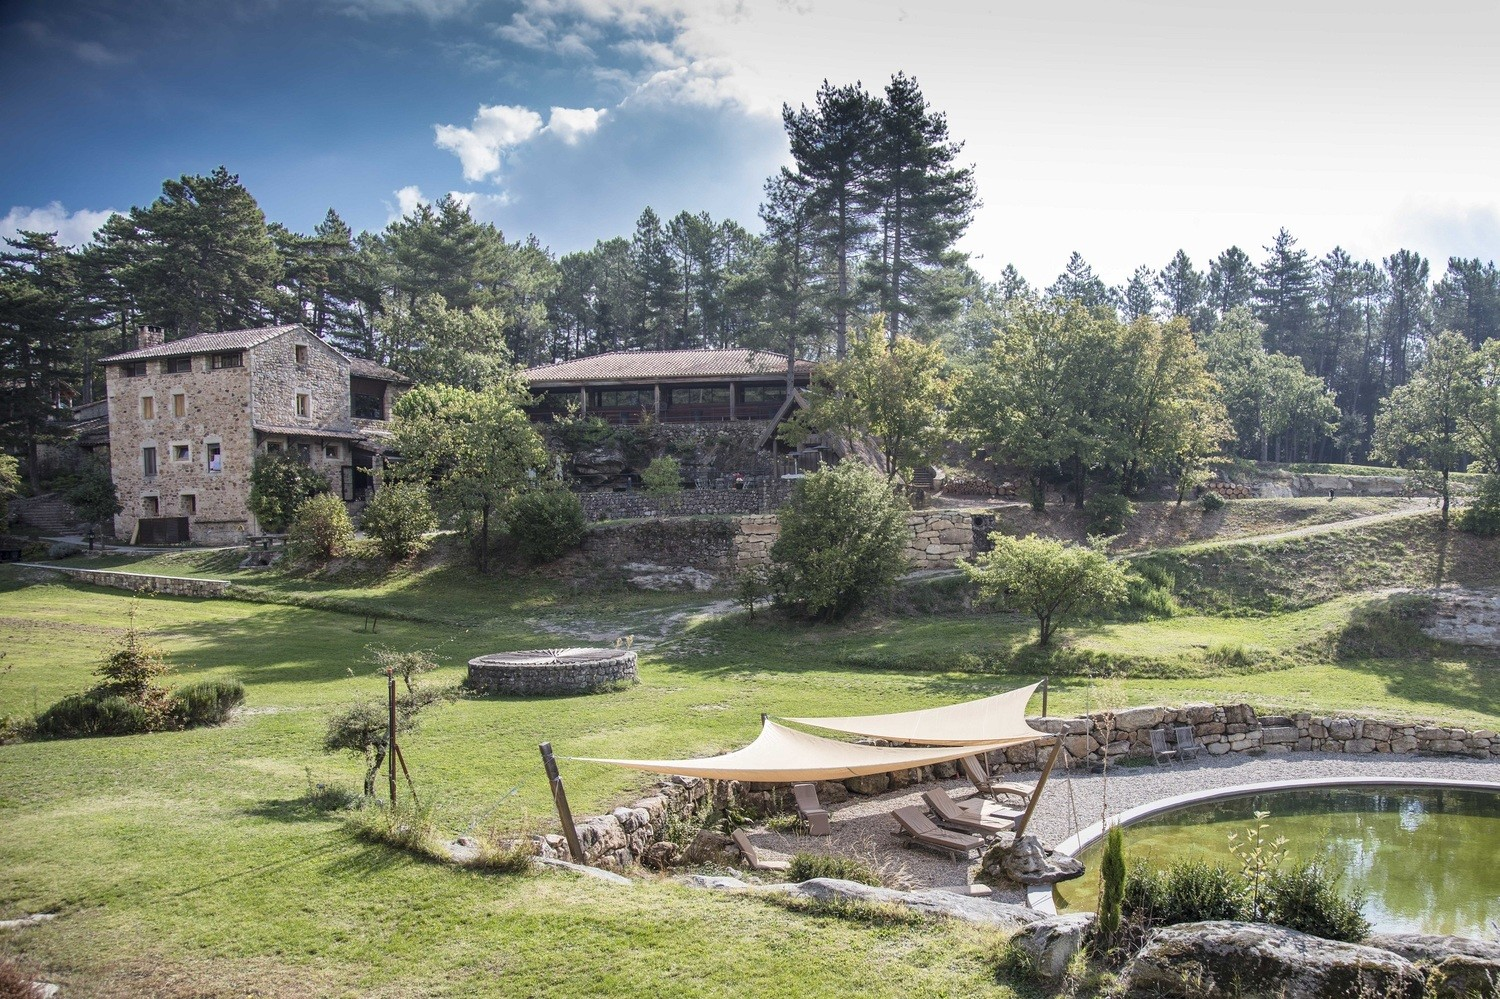 4-Day Yoga, Meditation and Reconnection Retreat in France June -13-16, 2019